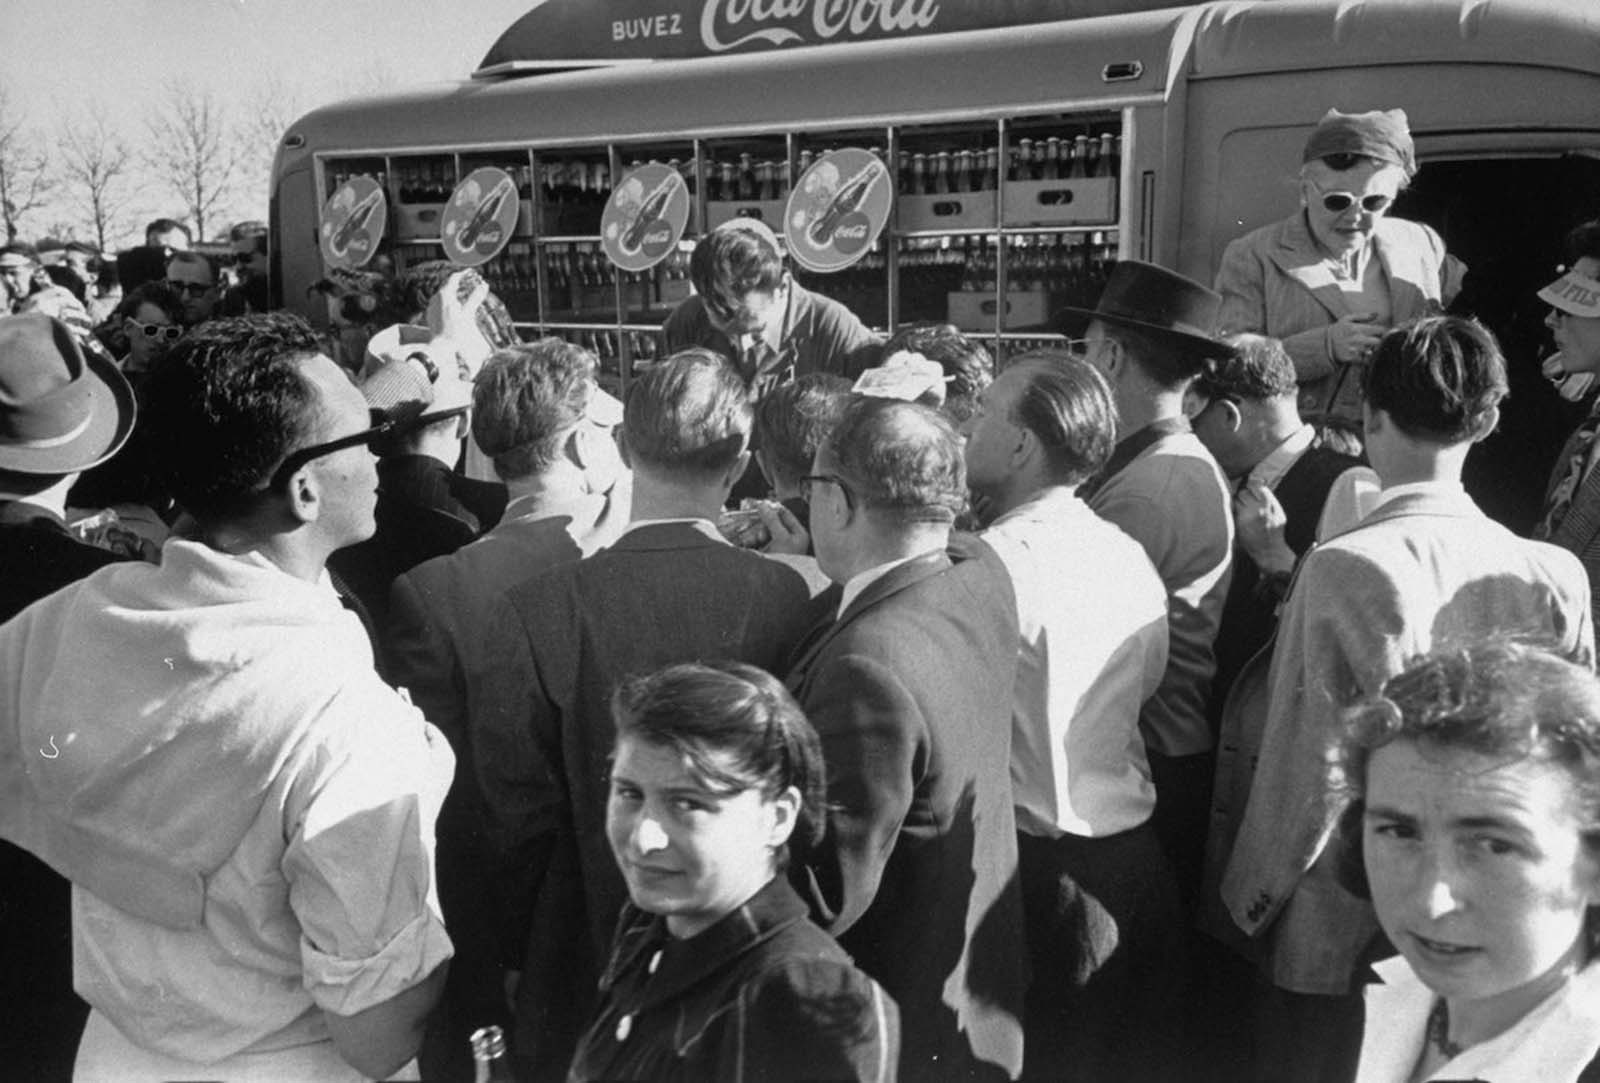 People buying Coca-Cola at an air exhibition.